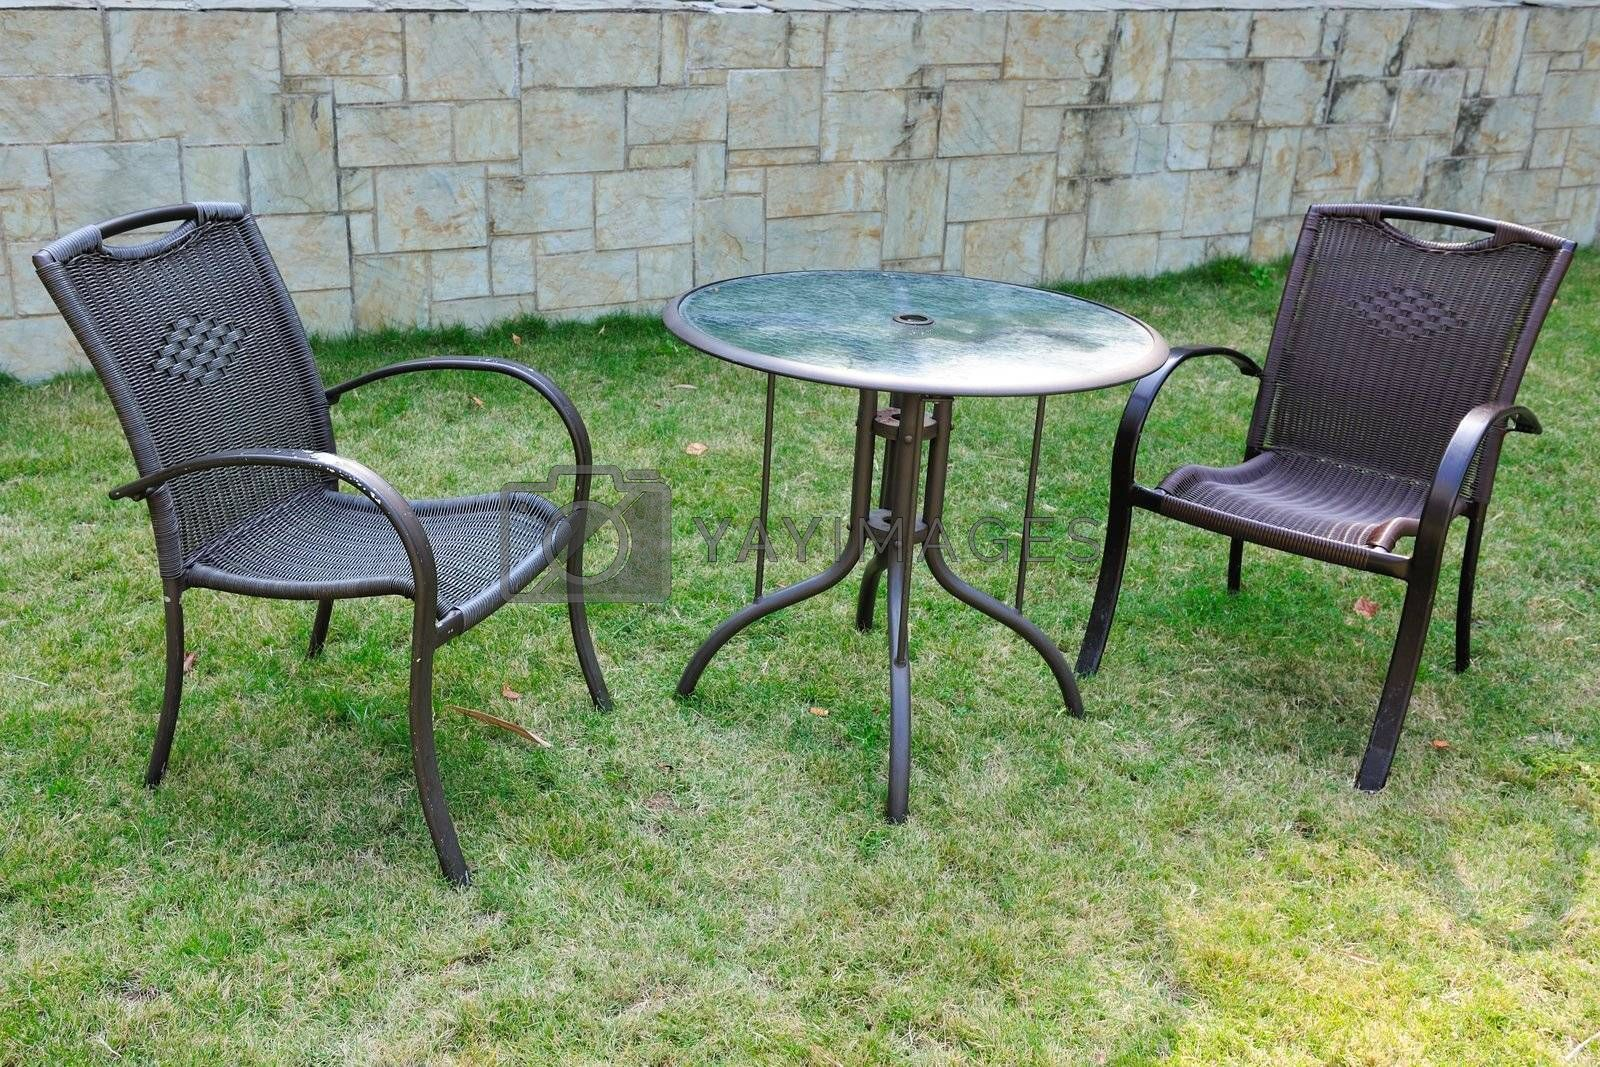 Table and chairs in the yard